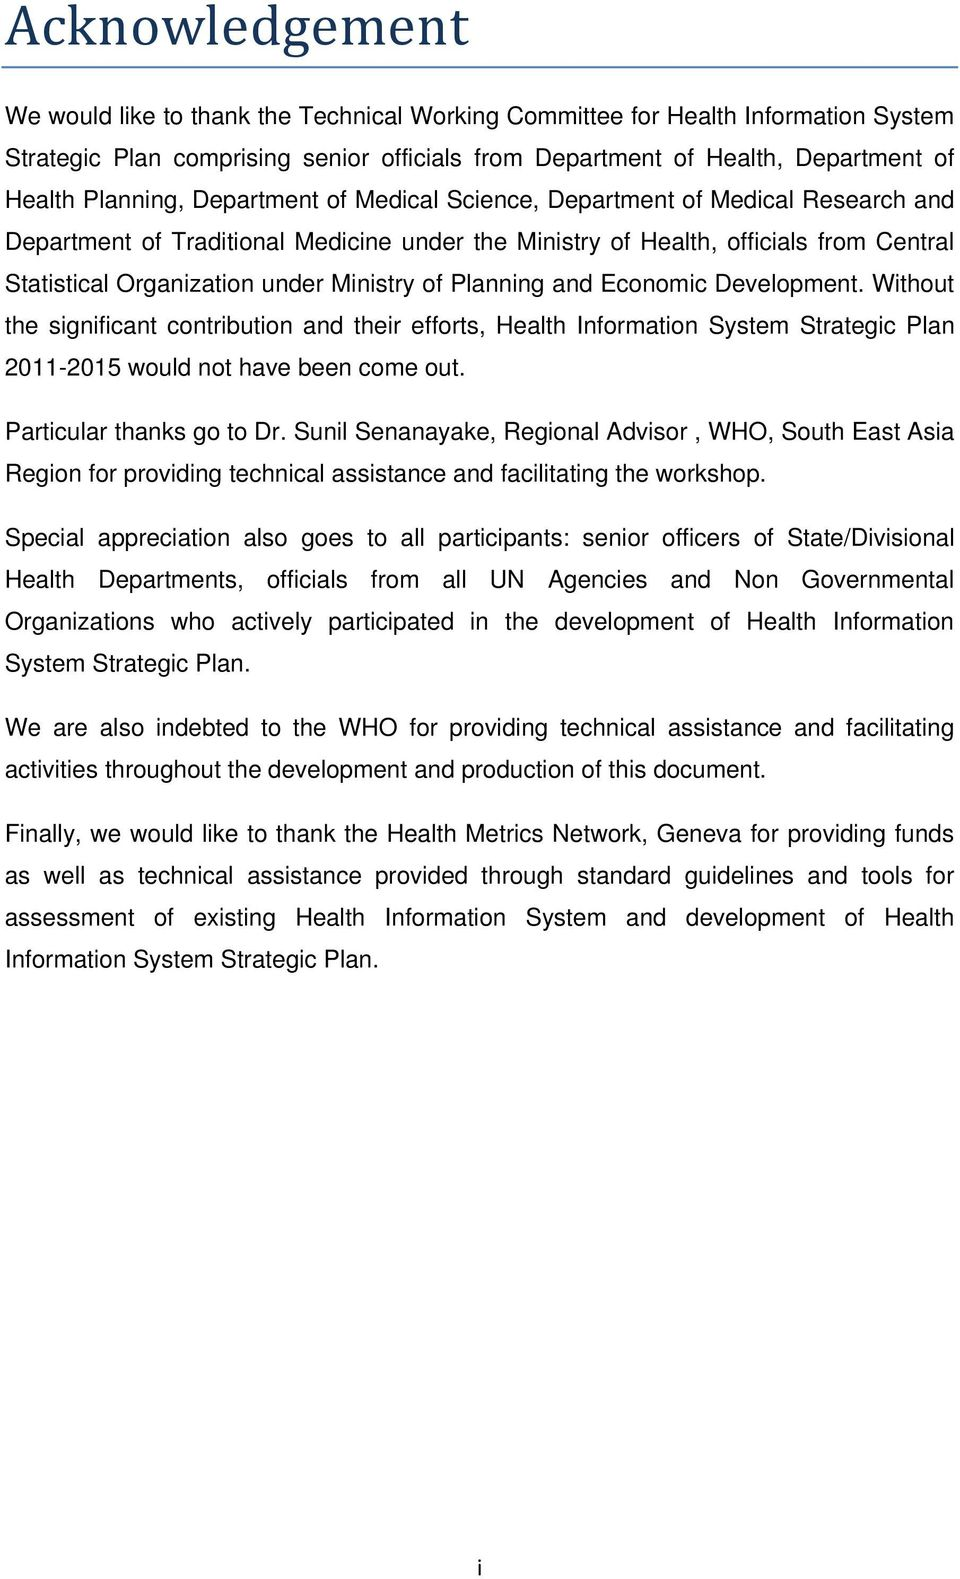 Ministry of Planning and Economic Development. Without the significant contribution and their efforts, Health Information System Strategic Plan 2011-2015 would not have been come out.